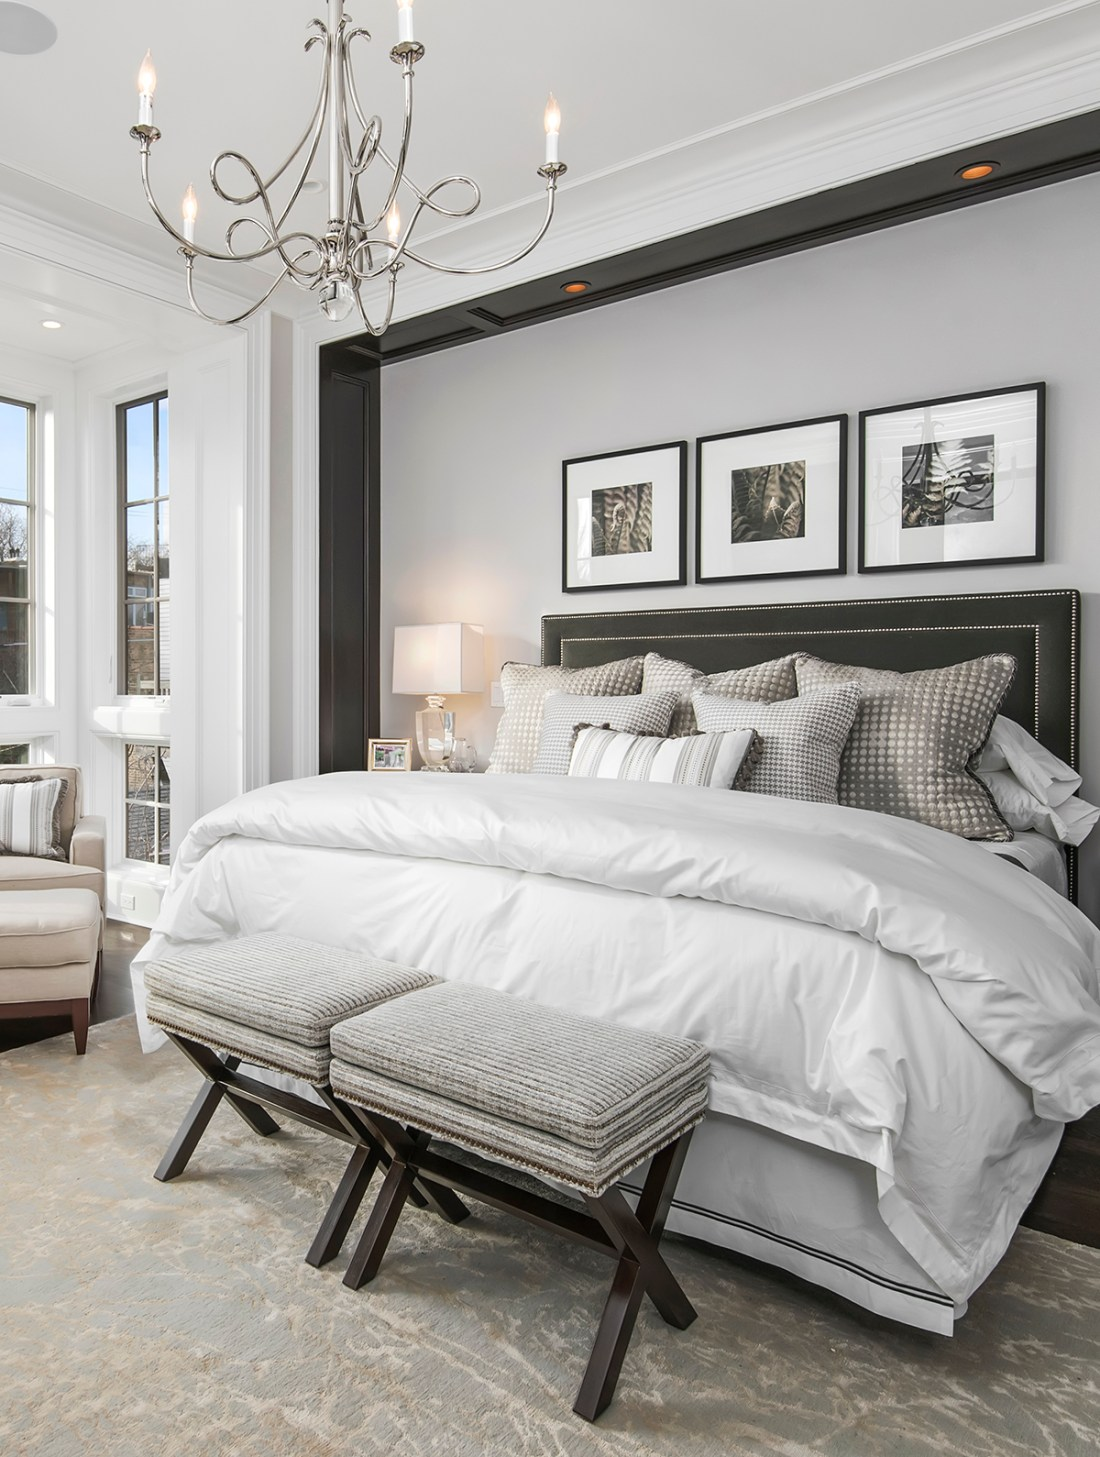 Bedroom Ideas from the Top Designers   Bedrooms Image Gallery